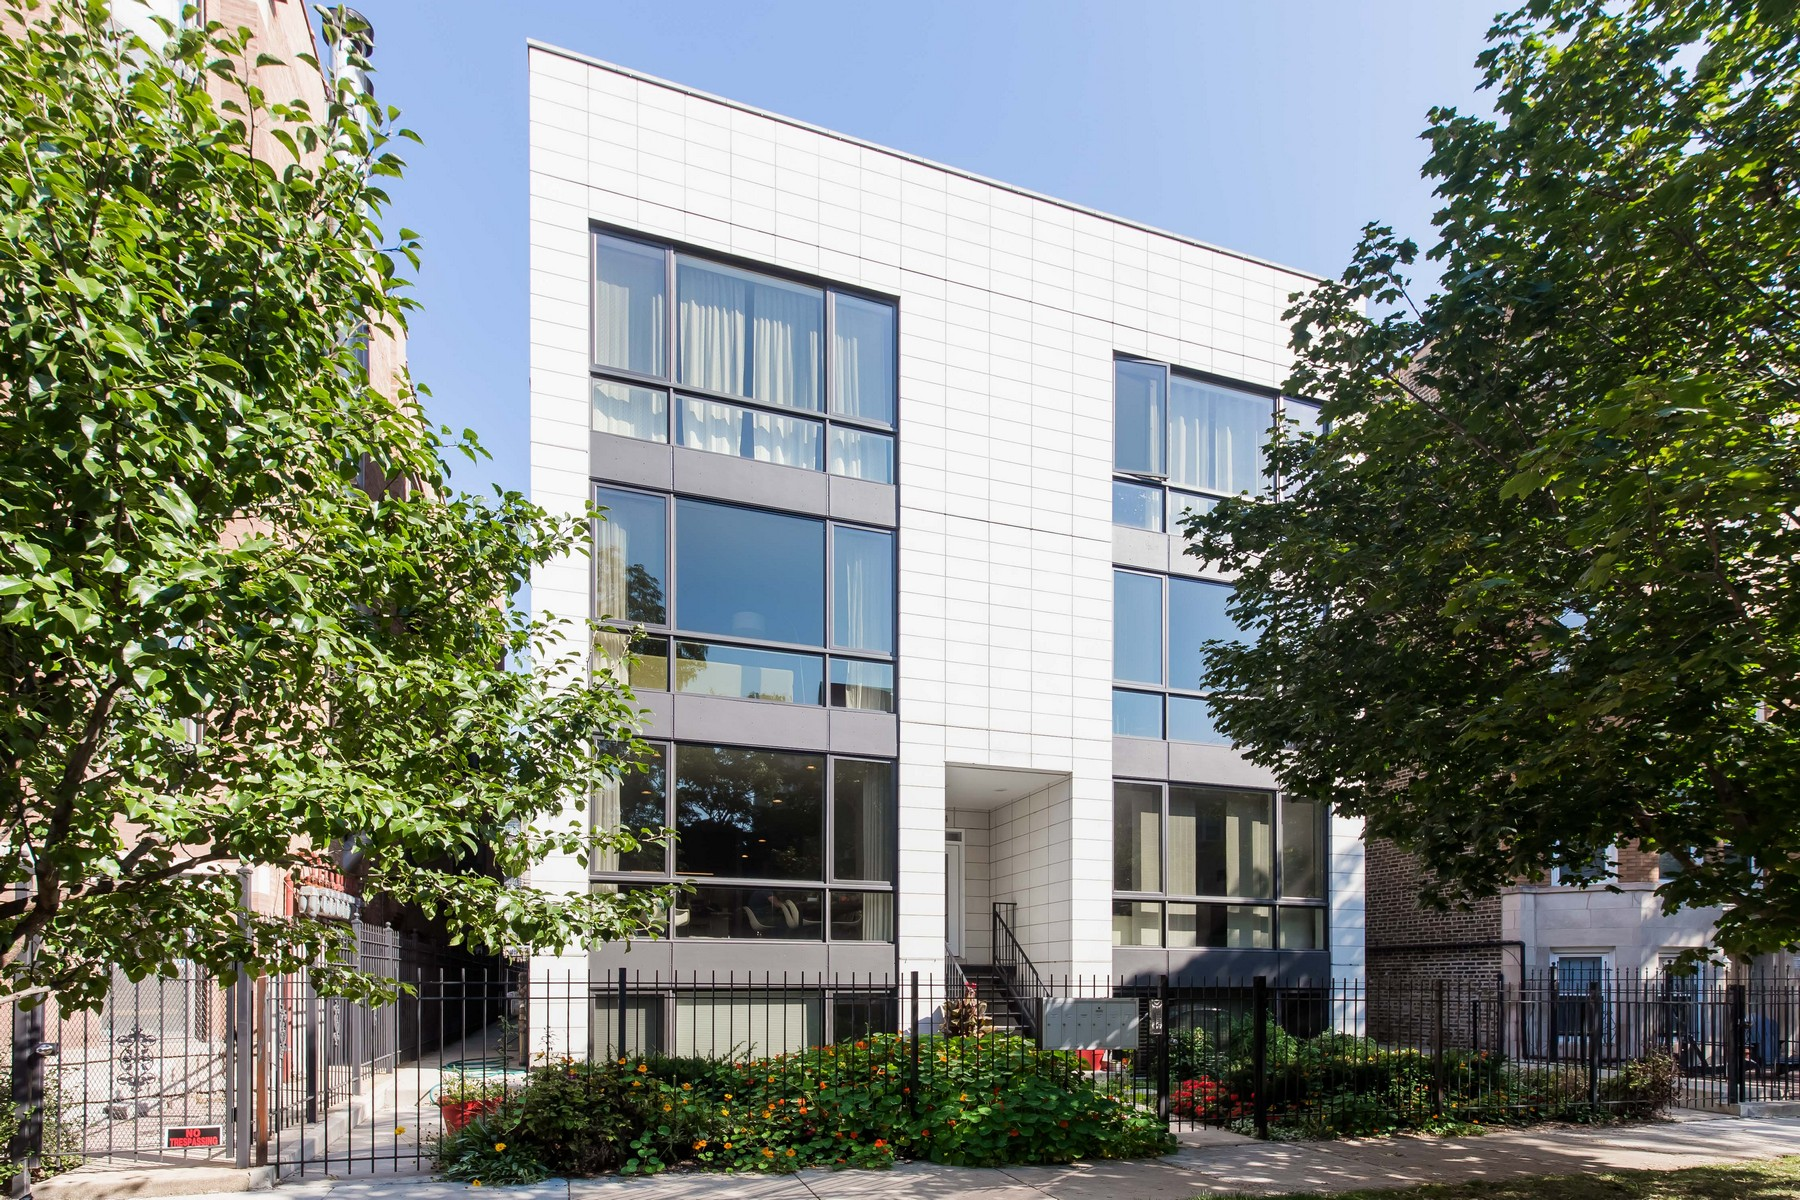 Condominium for Sale at Stunning Recent Construction Condo 2324 W Huron Street Unit 1W West Town, Chicago, Illinois, 60612 United States